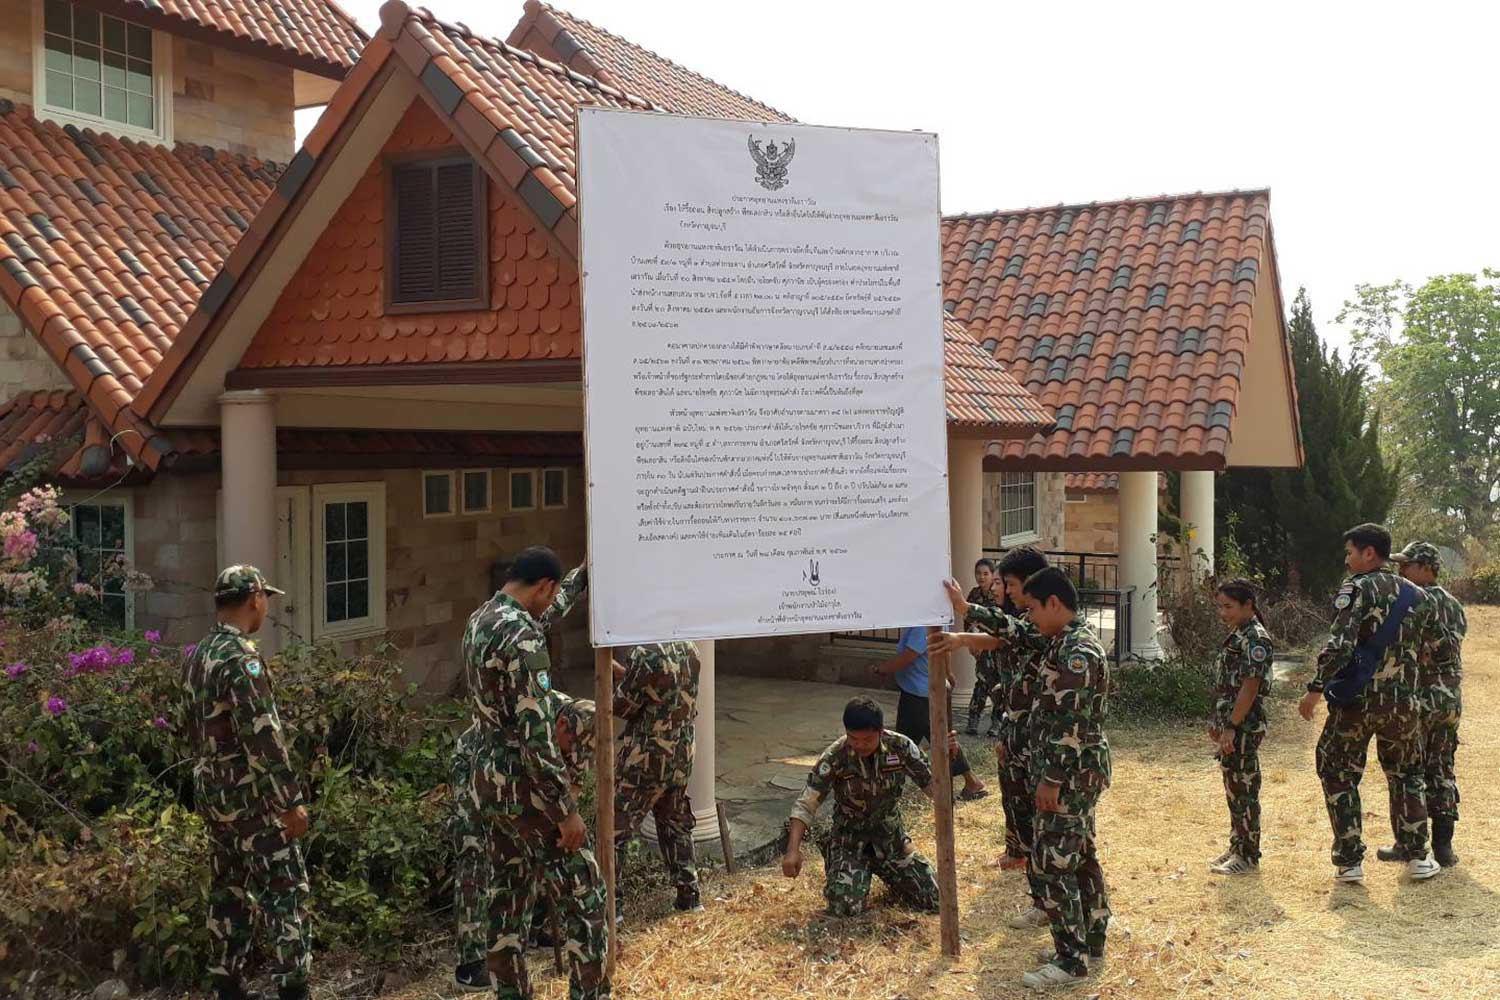 Erawan National Park officials post a demolition order at the resort owned by a former managing director of Thai Diary Industry Co in Sri Sawat district, Kanchanaburi province, on Feb 28. (File photo)